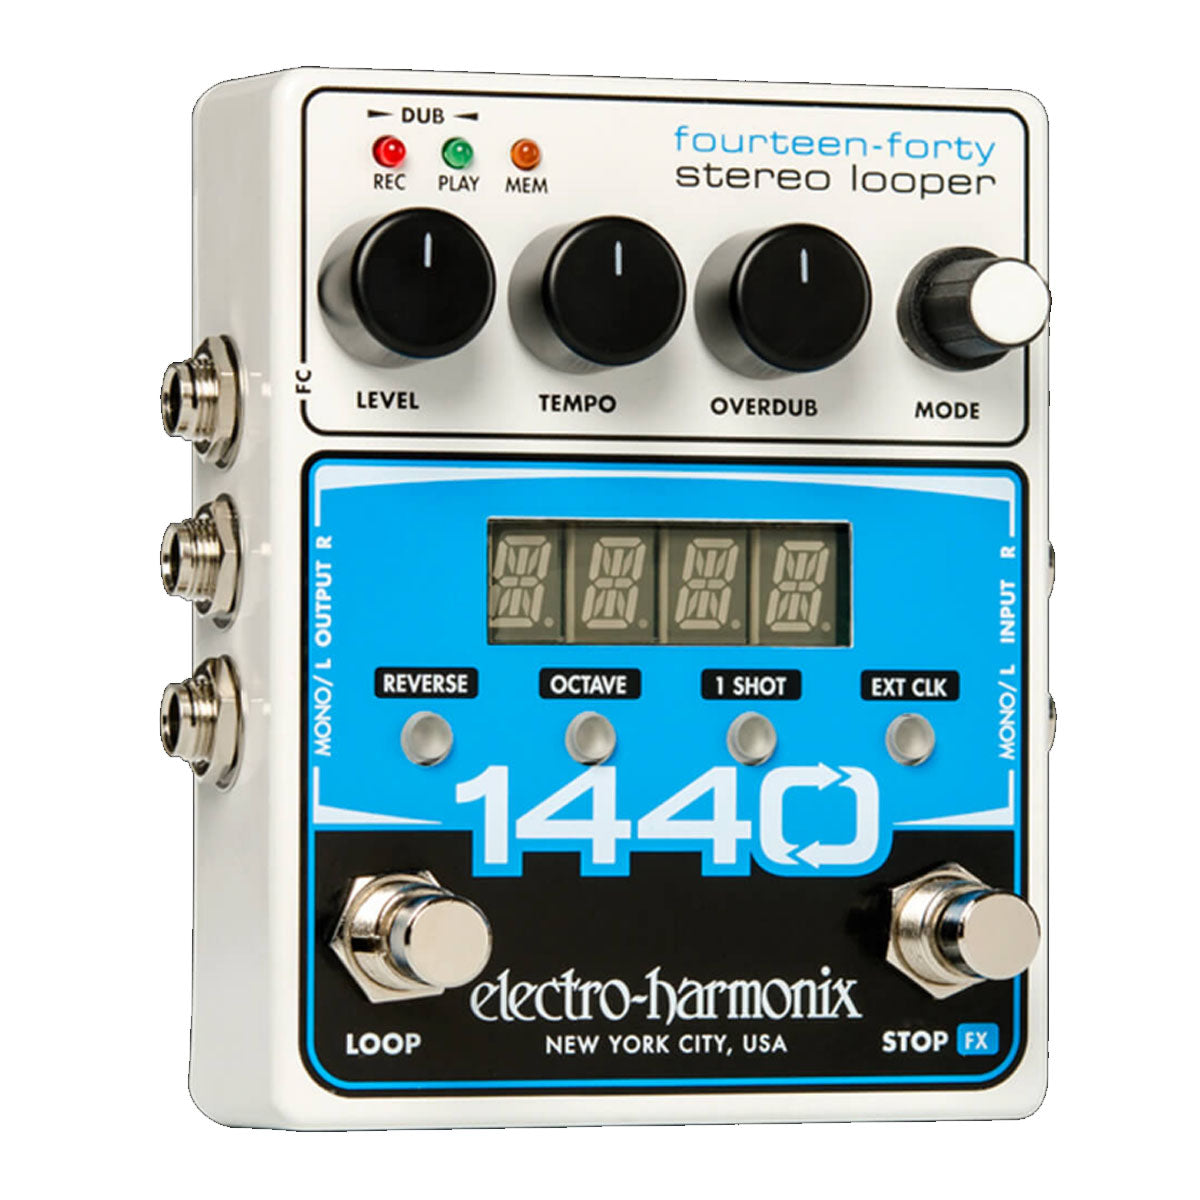 Electro-Harmonix EHX 1440 Stereo Looper Effects Pedal